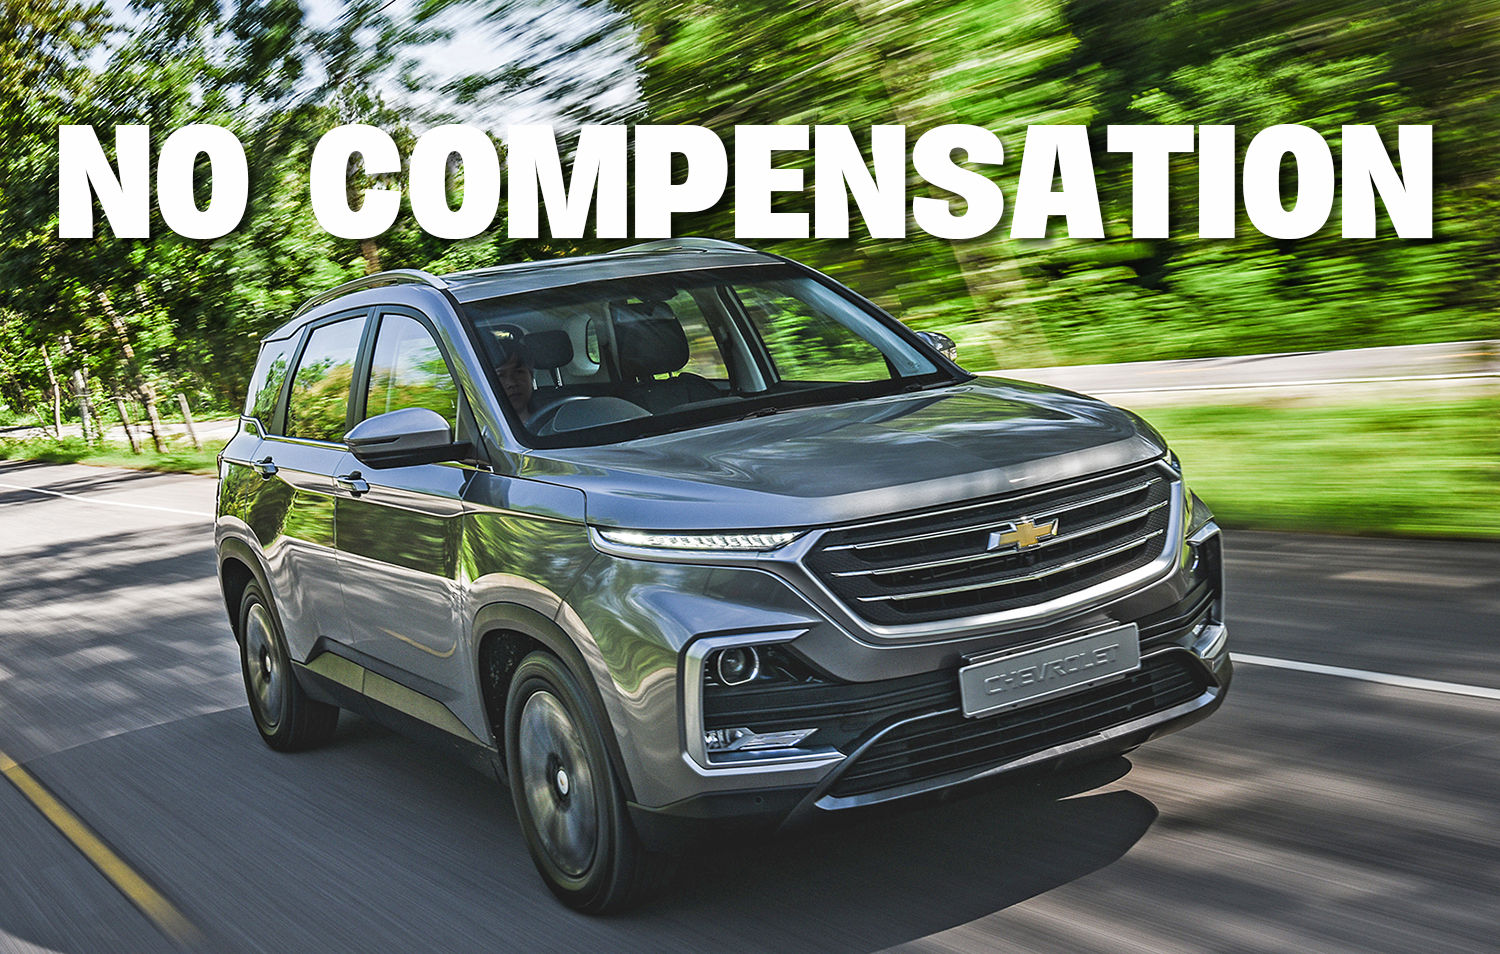 Chevrolet Thailand says 'no' to compensation demands for cars sold before discounts were announced | The Thaiger